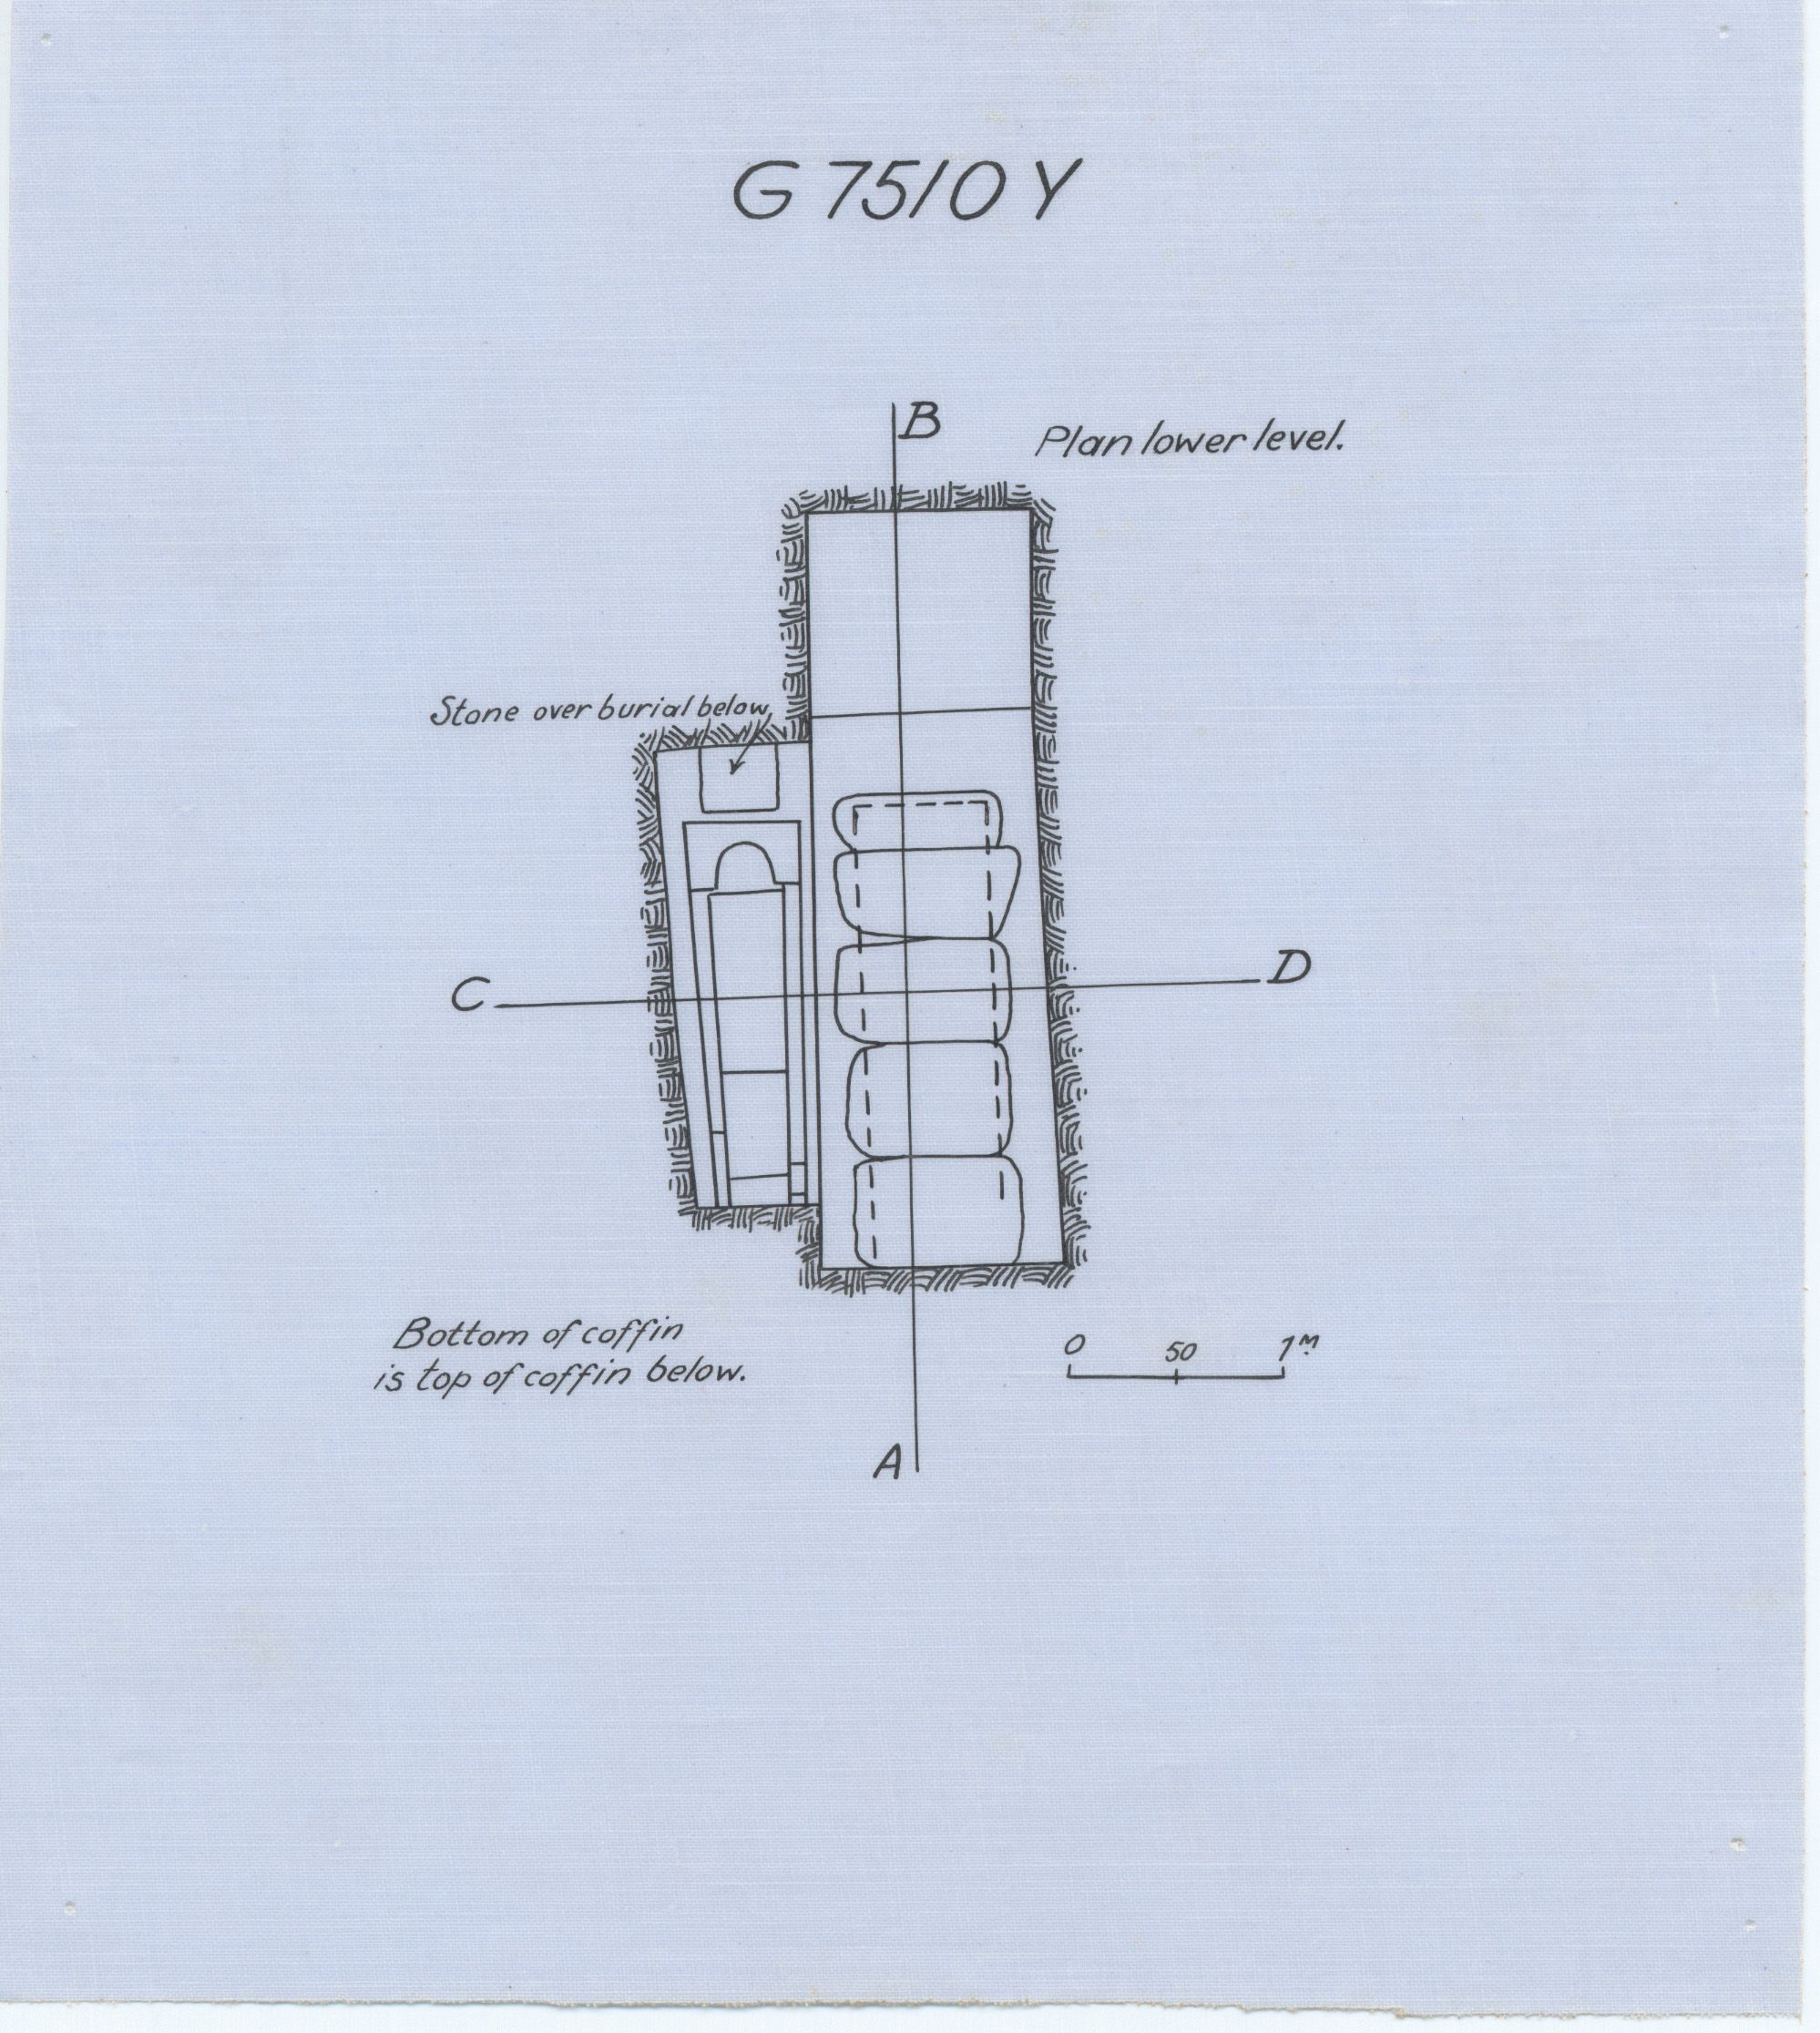 Maps and plans: G 7510, Shaft Y